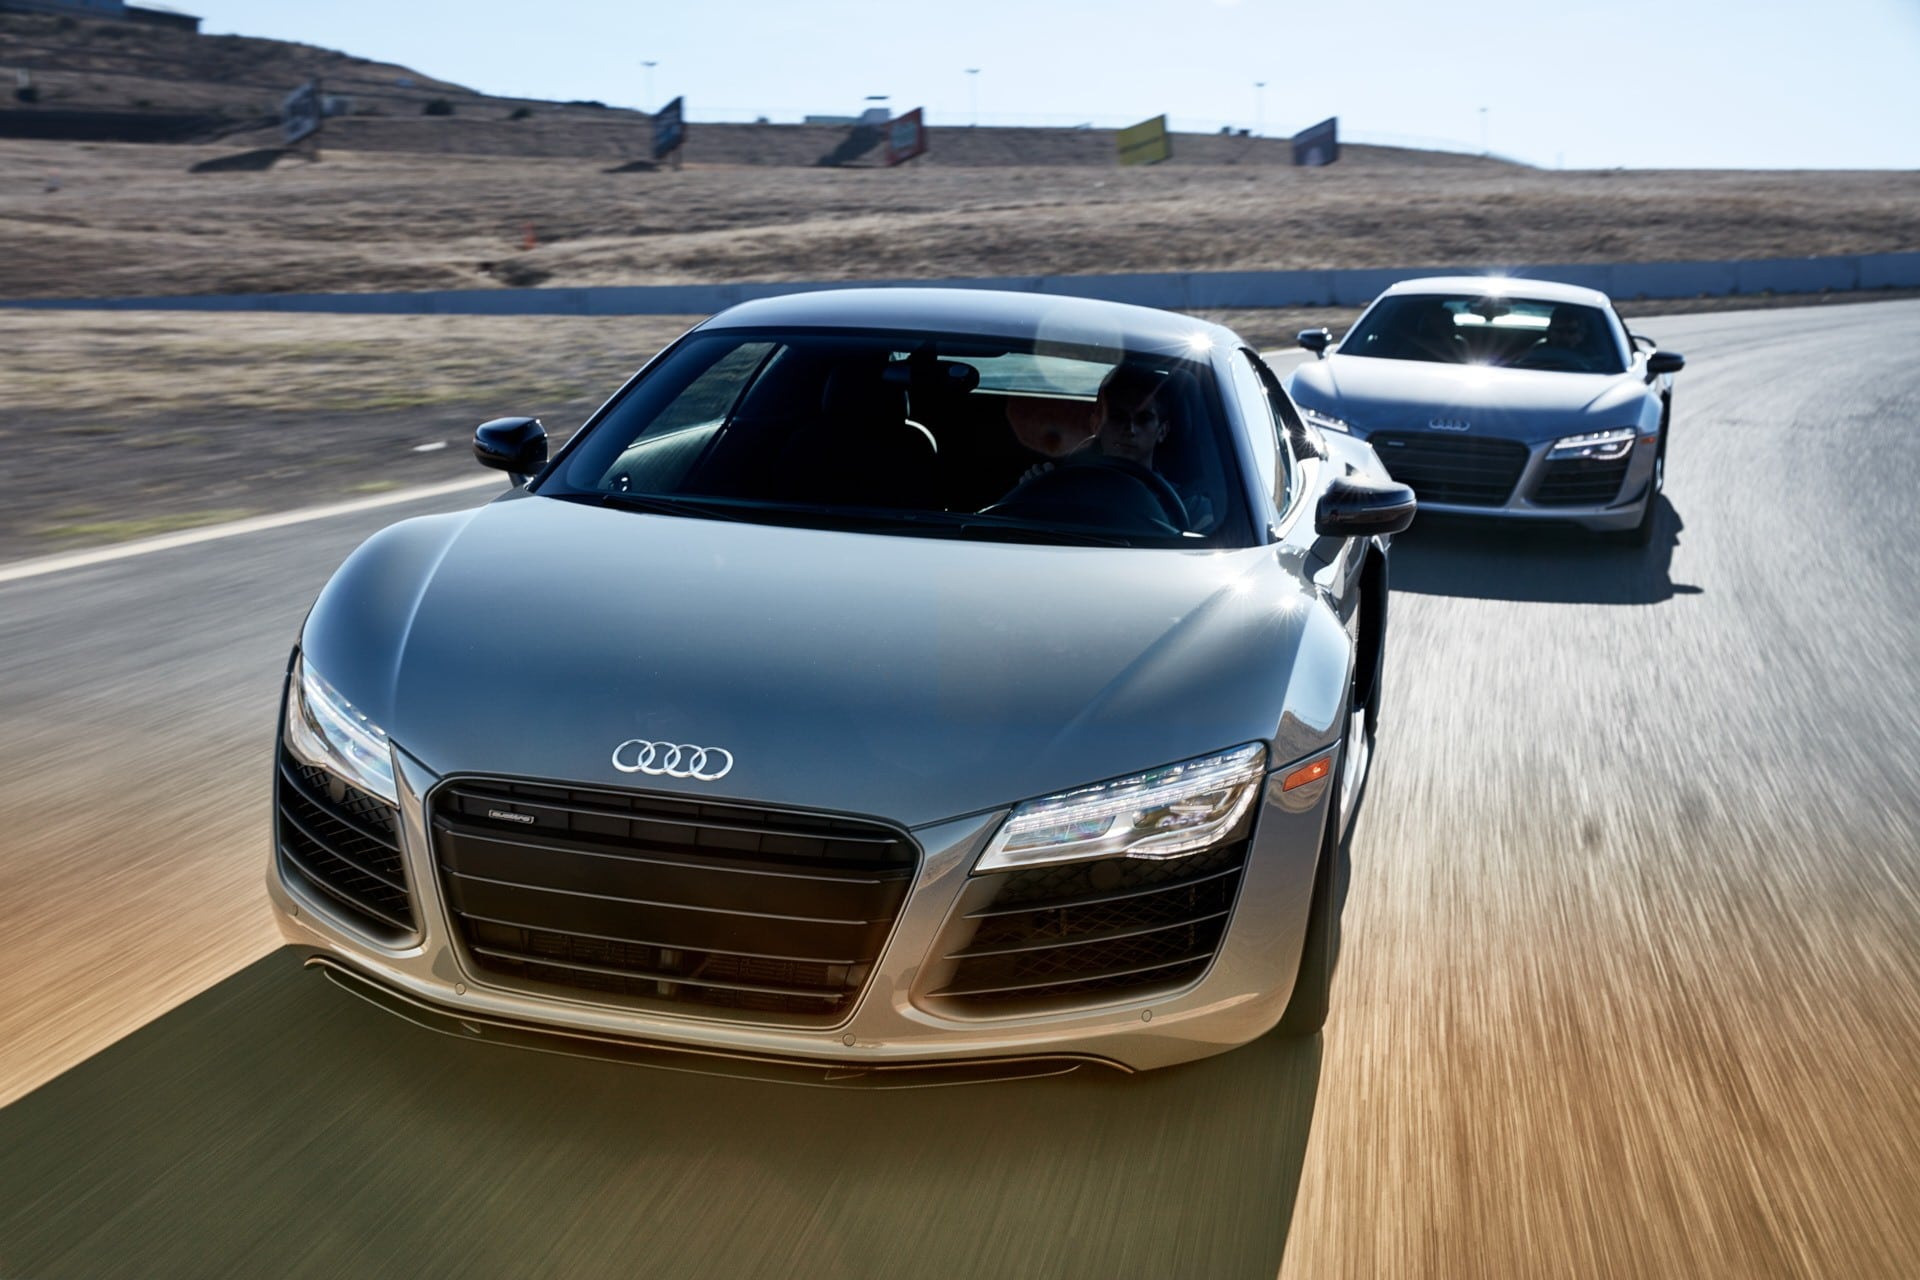 The limited edition Audi R8 V10 +, now available at Audi sportscar experience, sonoma